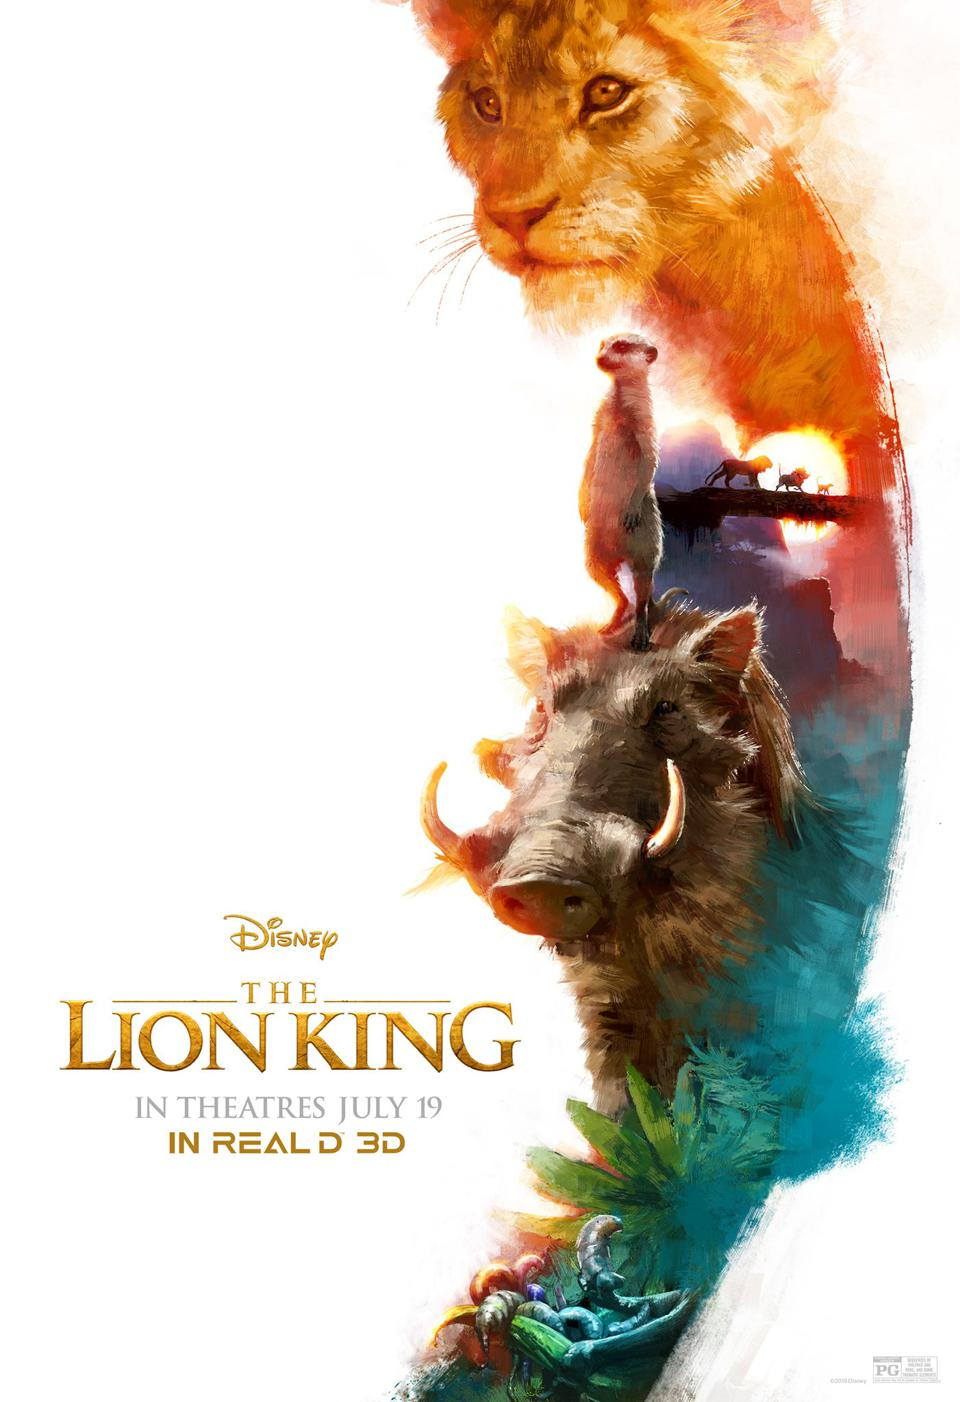 Official AMC RealD 3D poster for Disney's ″The Lion King″